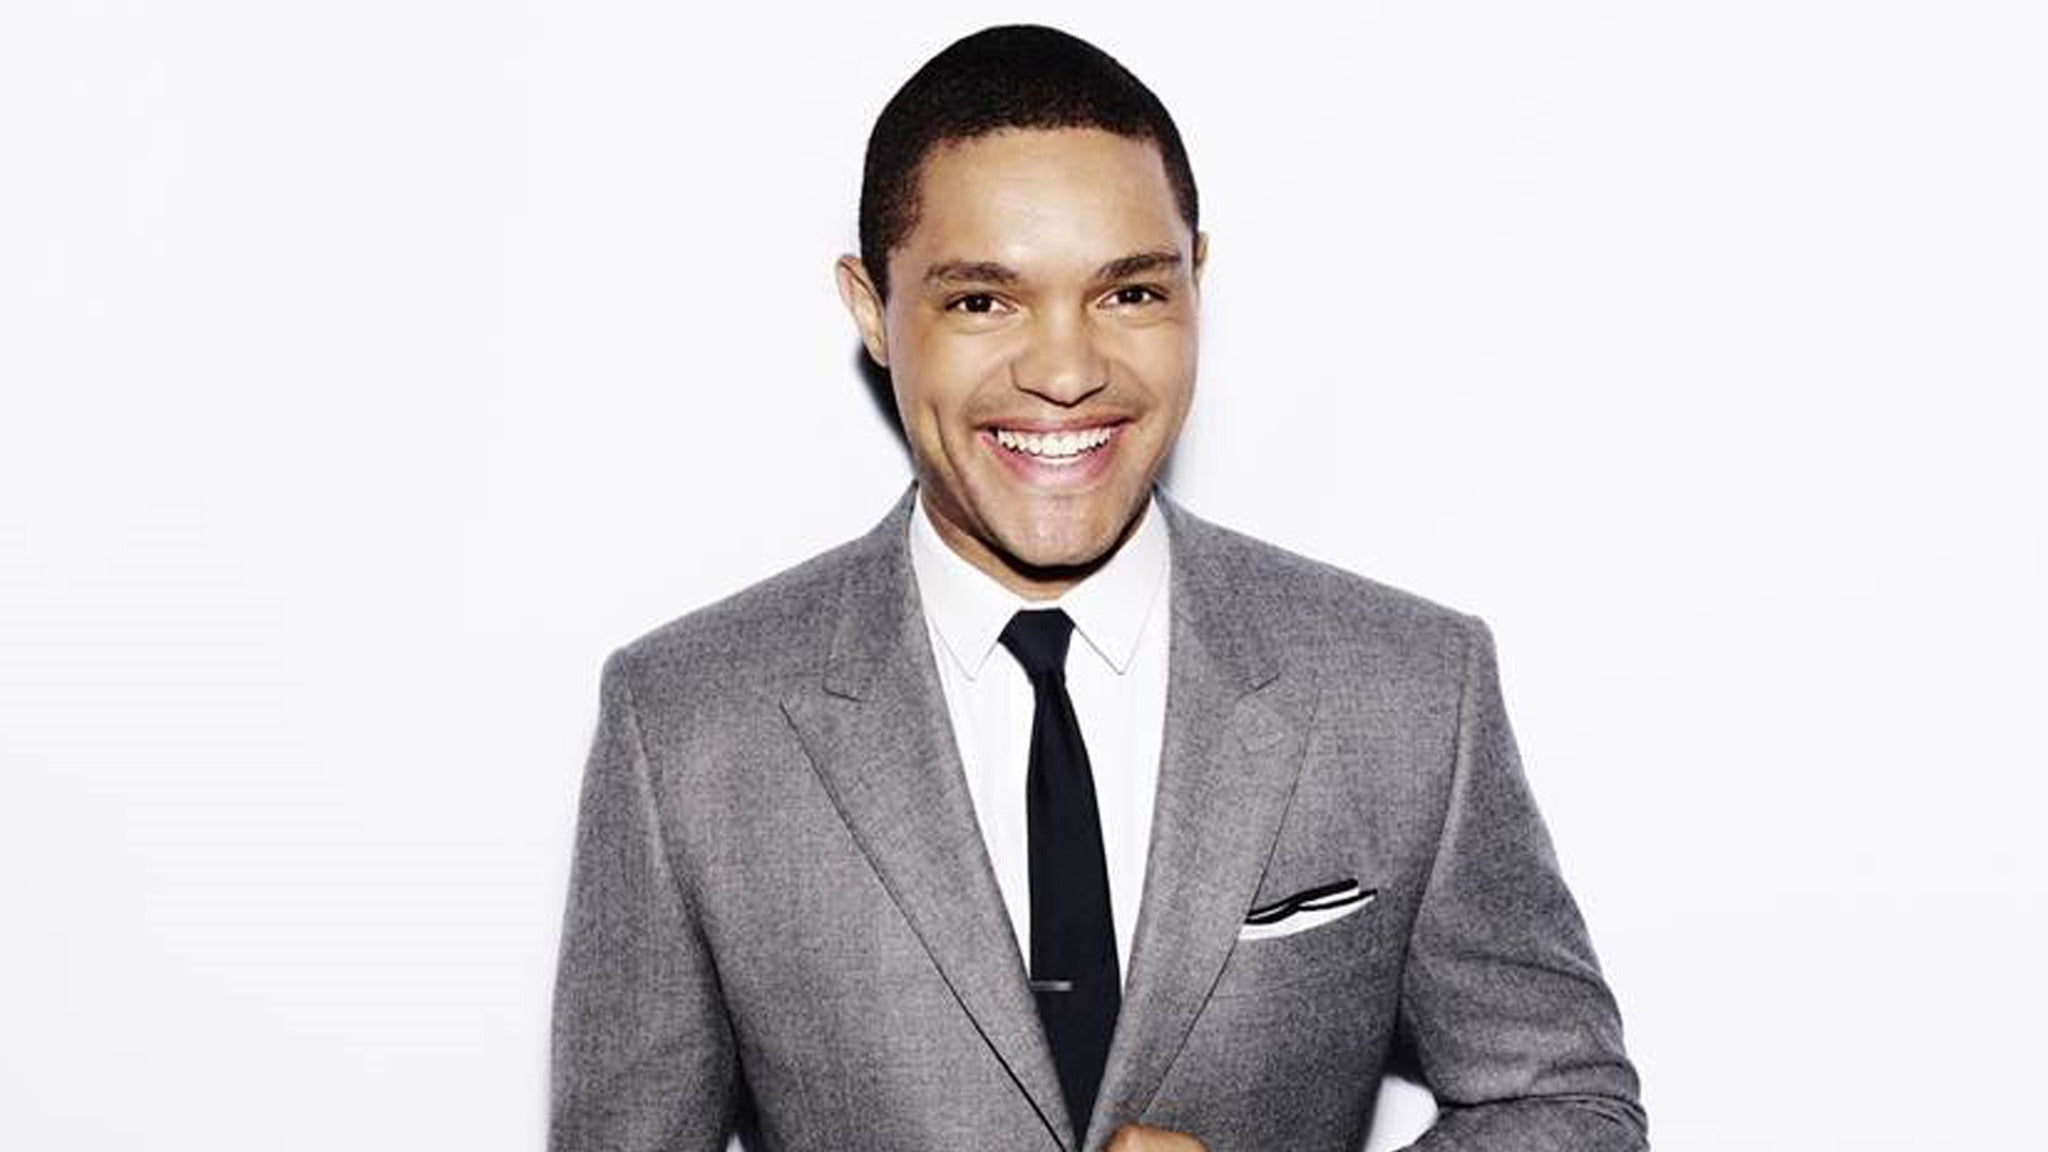 Trevor Noah at The Grand Theater at Foxwoods Resort Casino